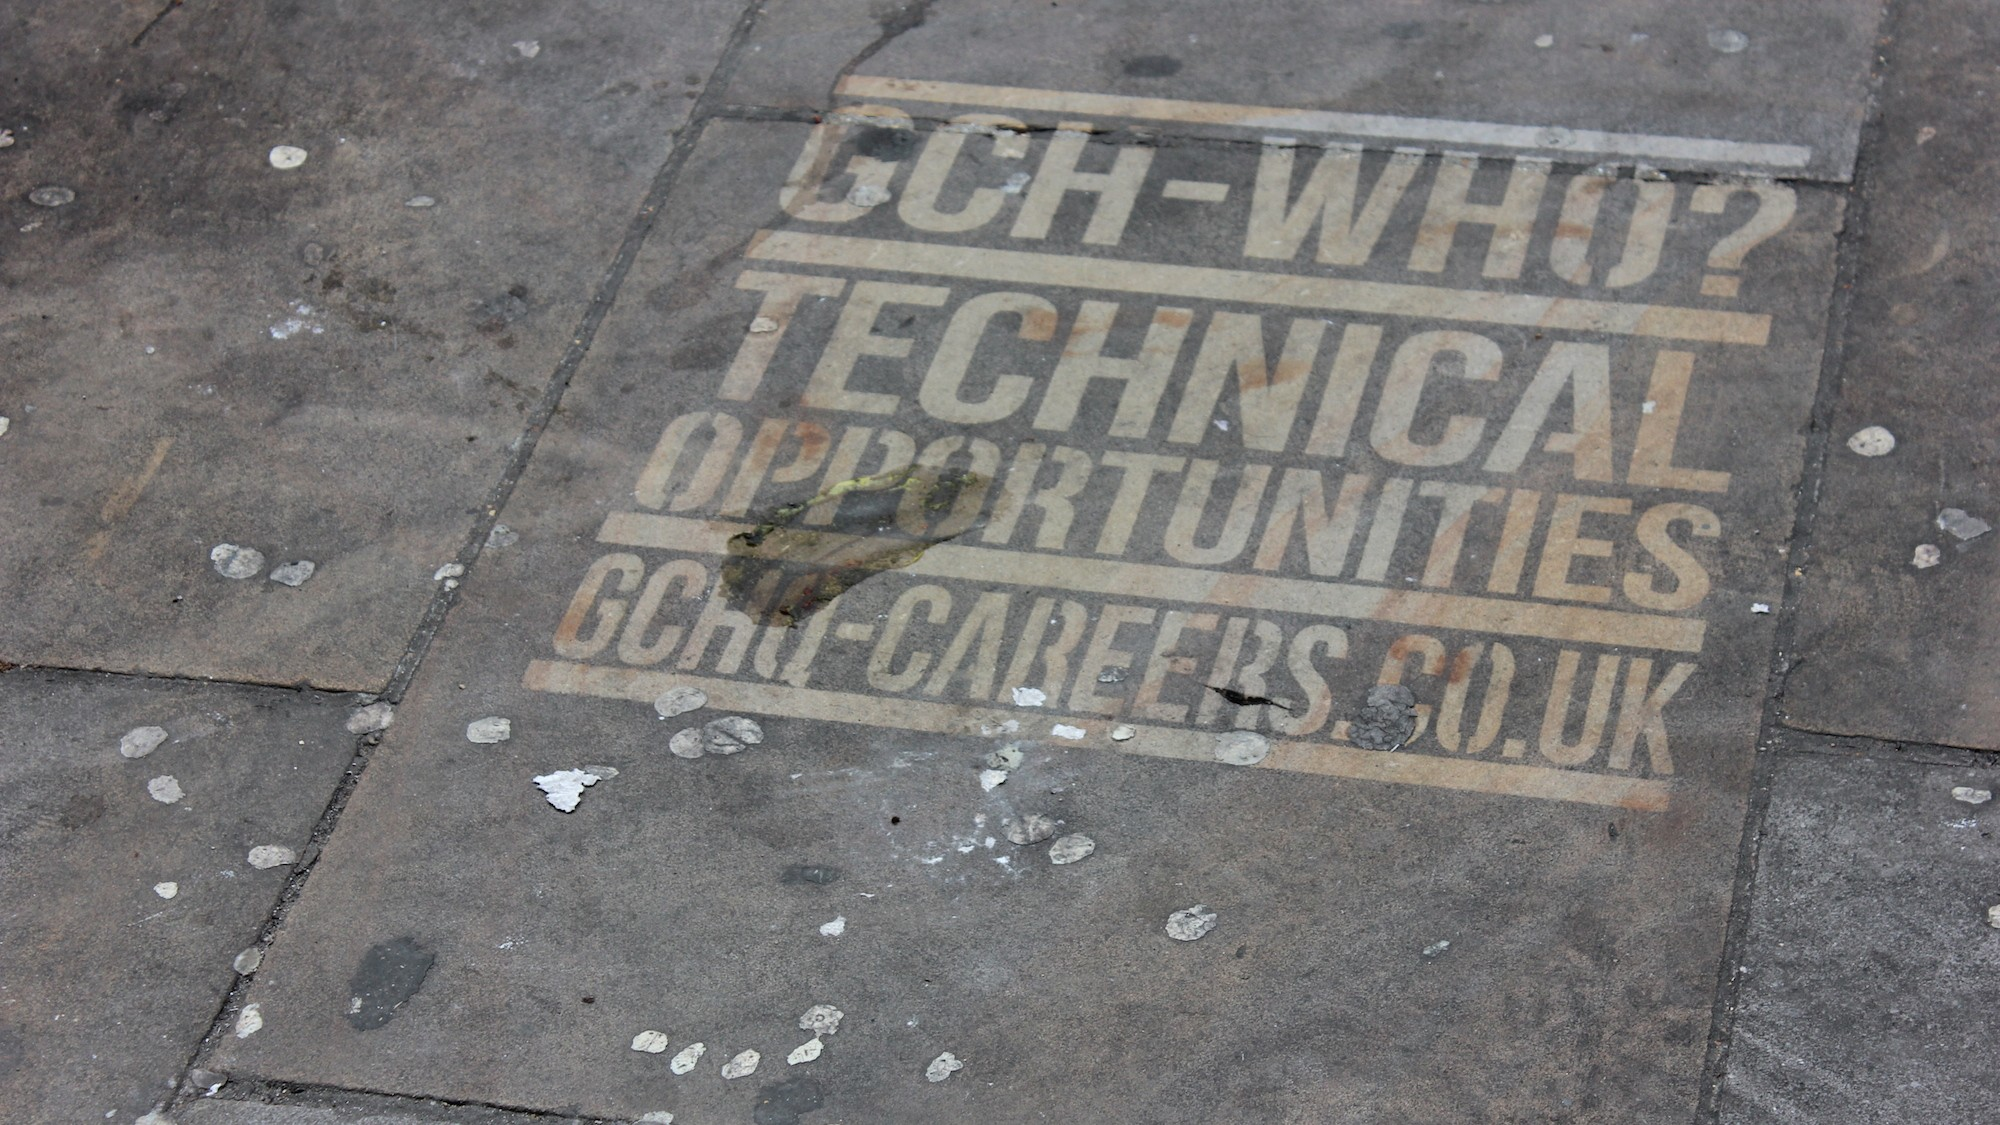 GCHQ Is Targeting London's Tech Hipsters With Graffiti Recruitment Ads